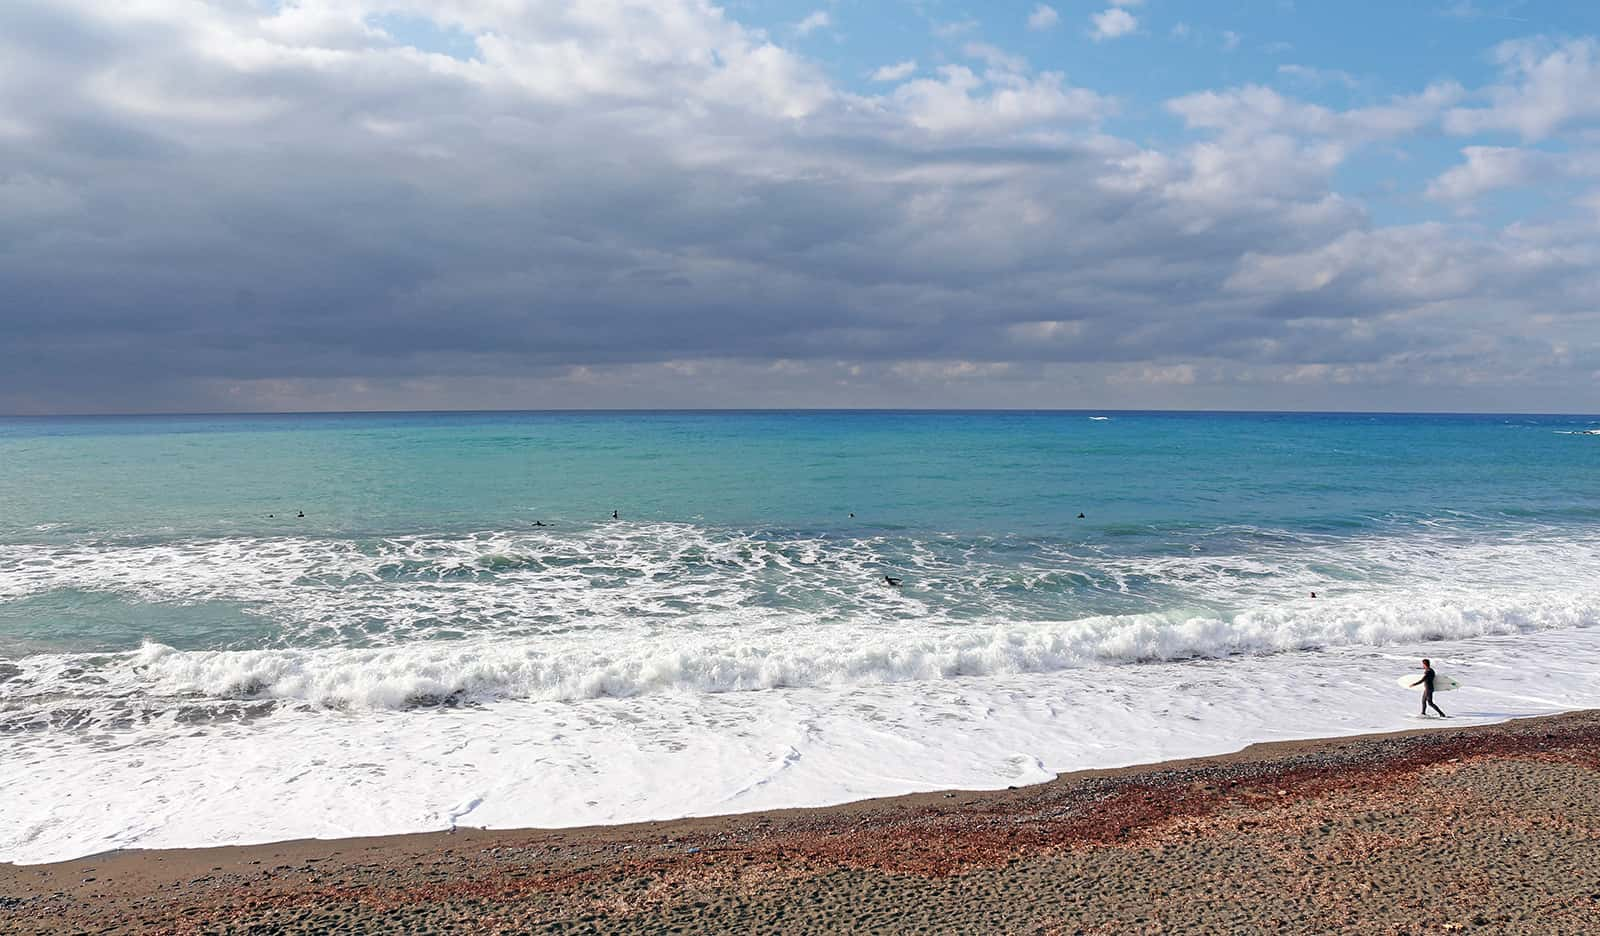 Ligurian sea colors.